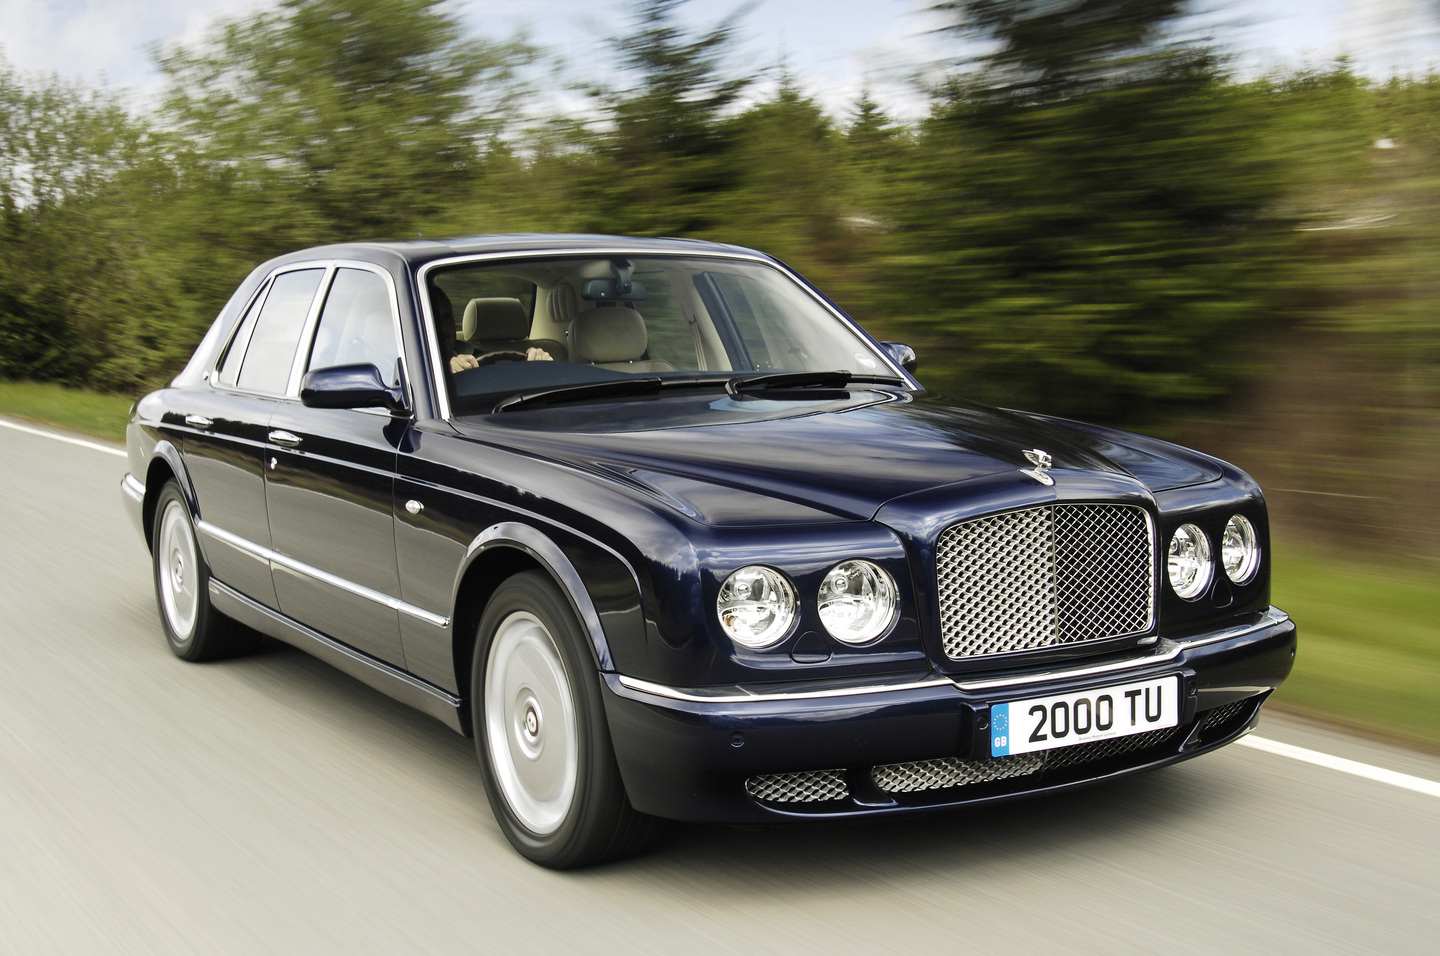 Bentley Arnage Auto Wallpapers GroenLicht.be